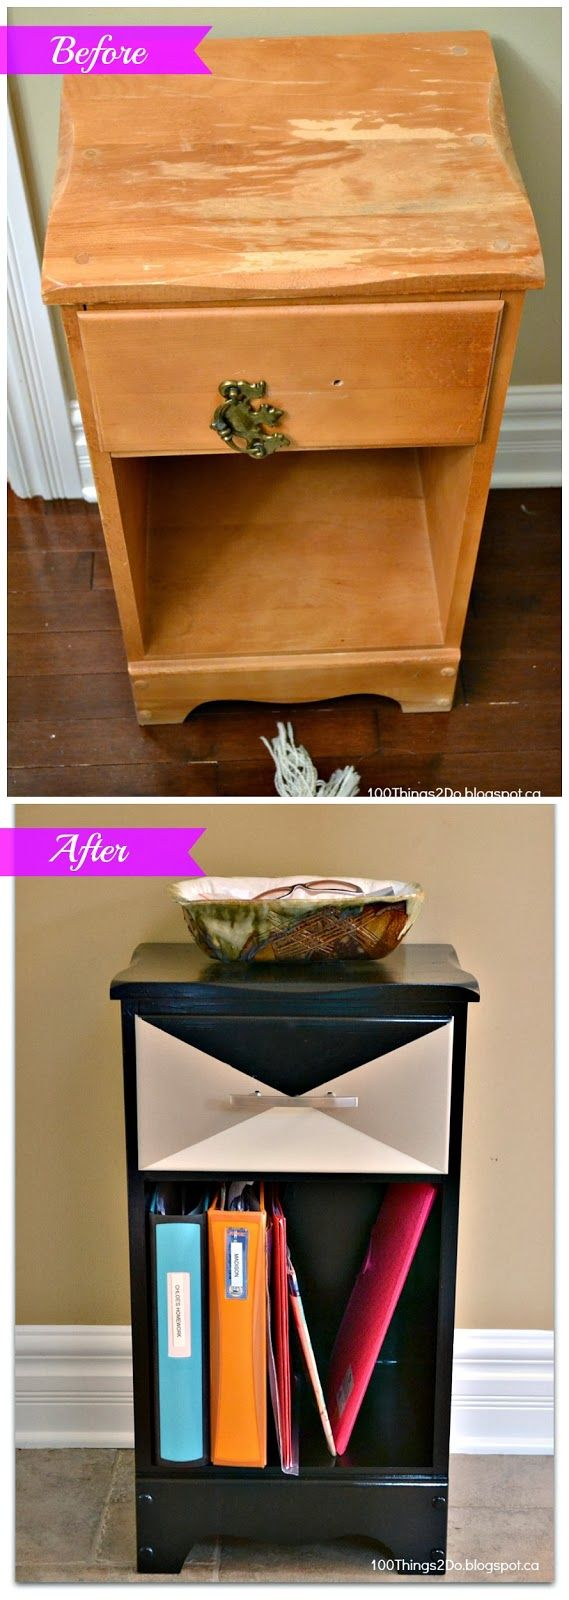 Night stand / night table / bedside table makeover. Refinished and Repurposed to a drop station at the front door.  Holds keys and homework in one small space!